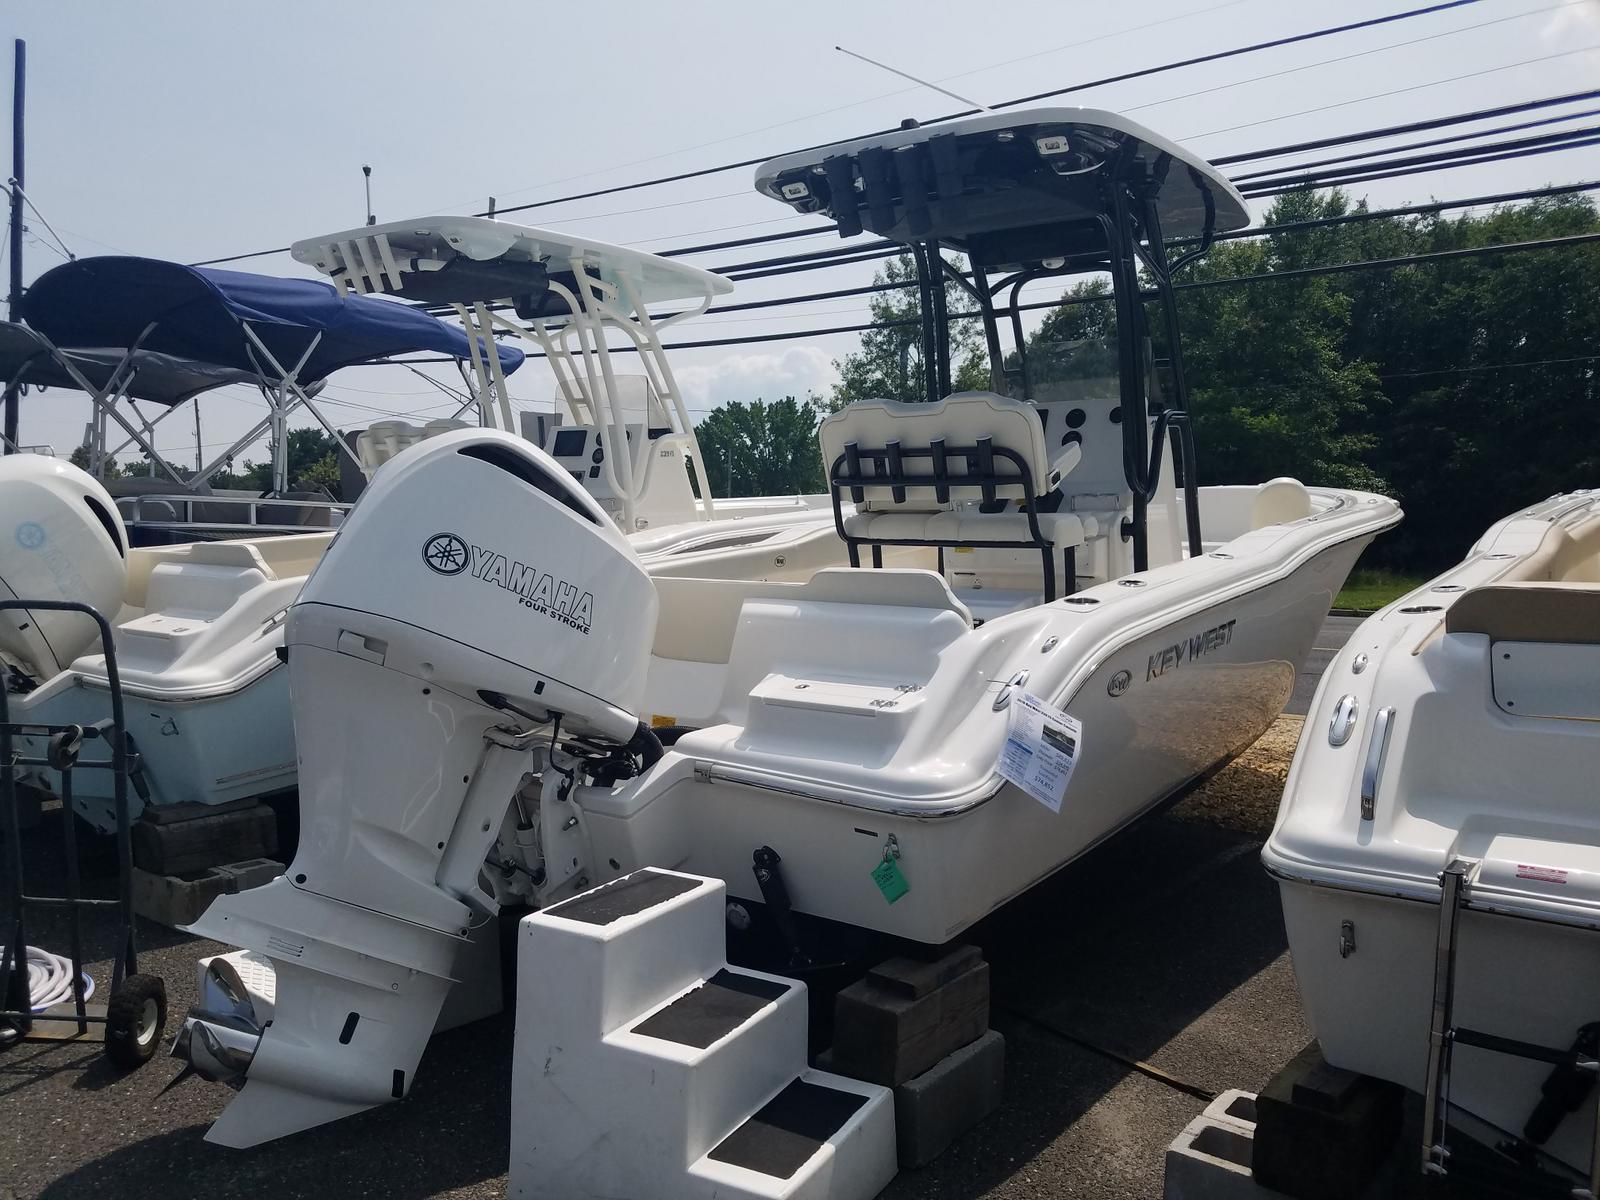 Inventory from Key West Boats, Inc  and SEA DOO Coty Marine